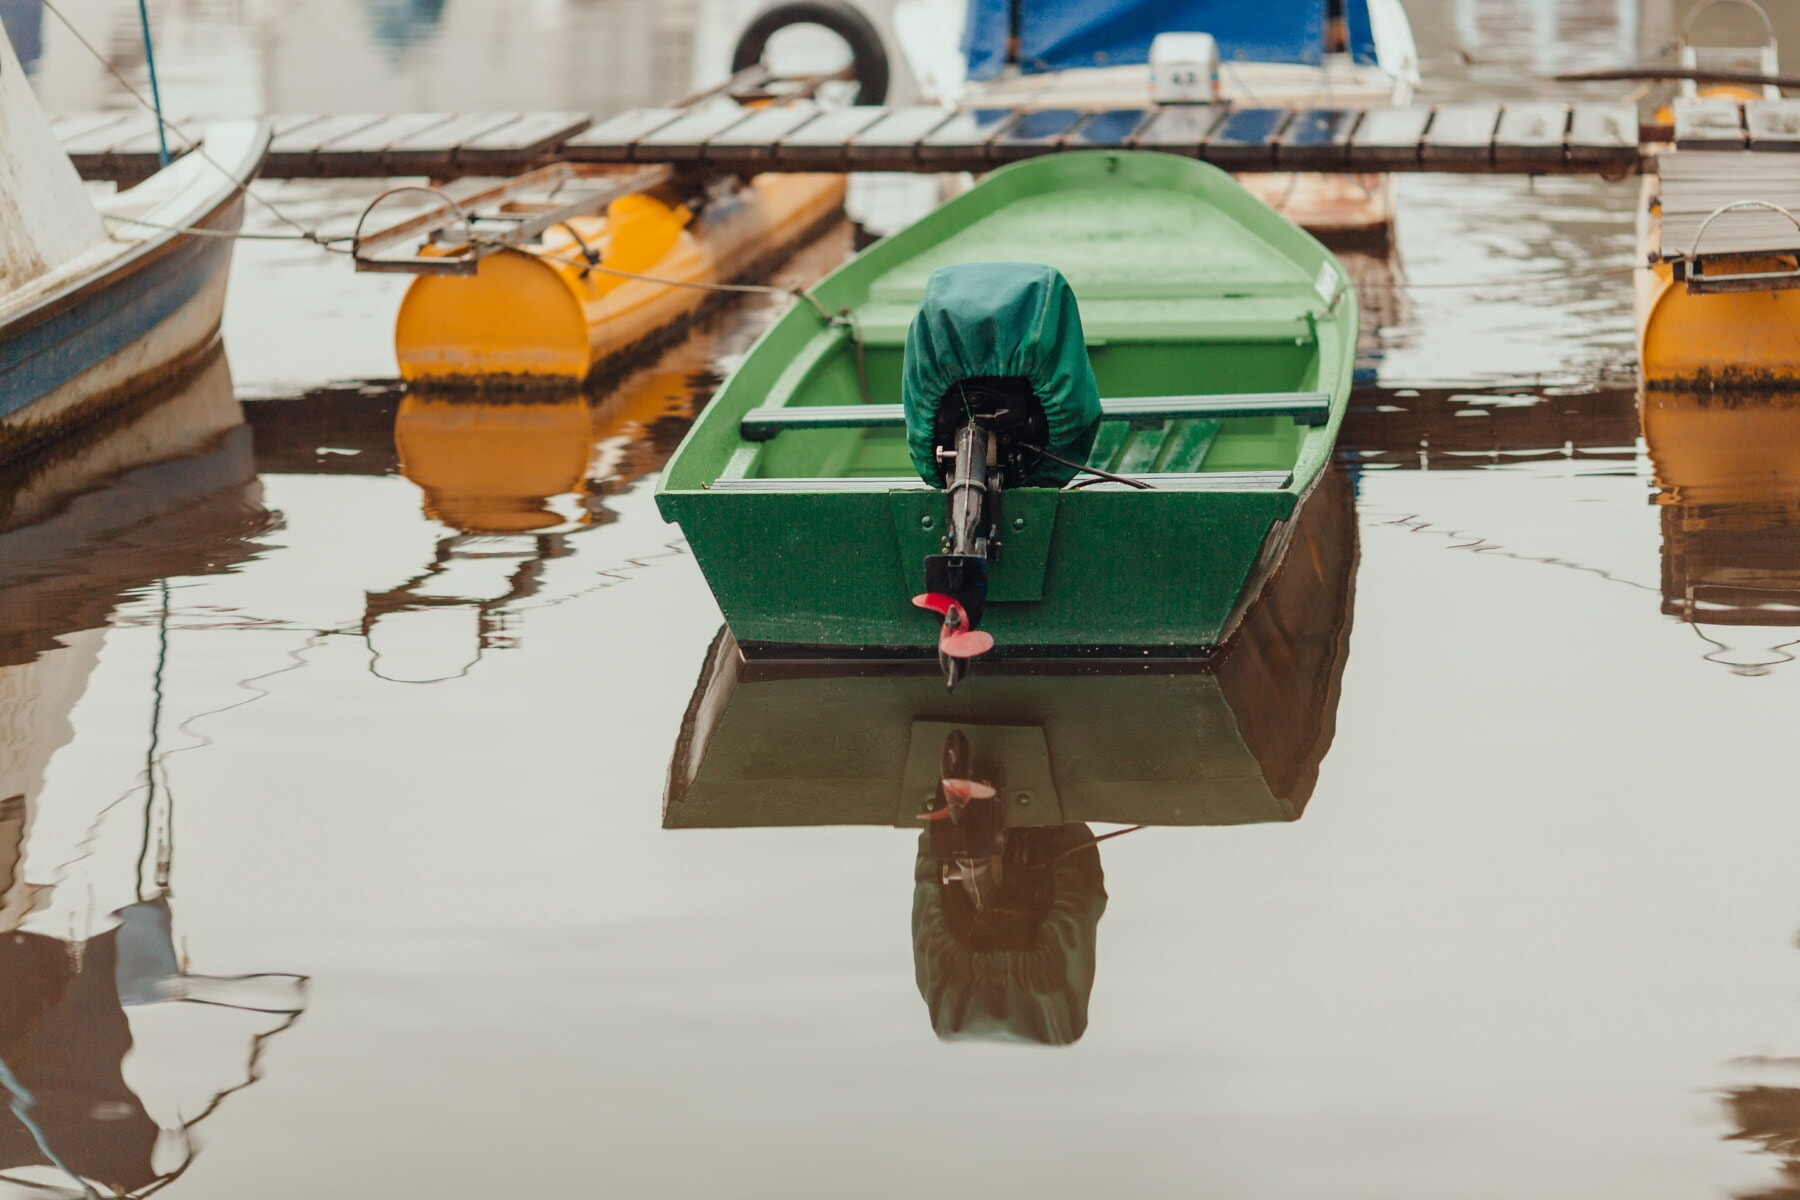 motorboat, boats, motor, river, dock, calm, harbor, canal, water, device